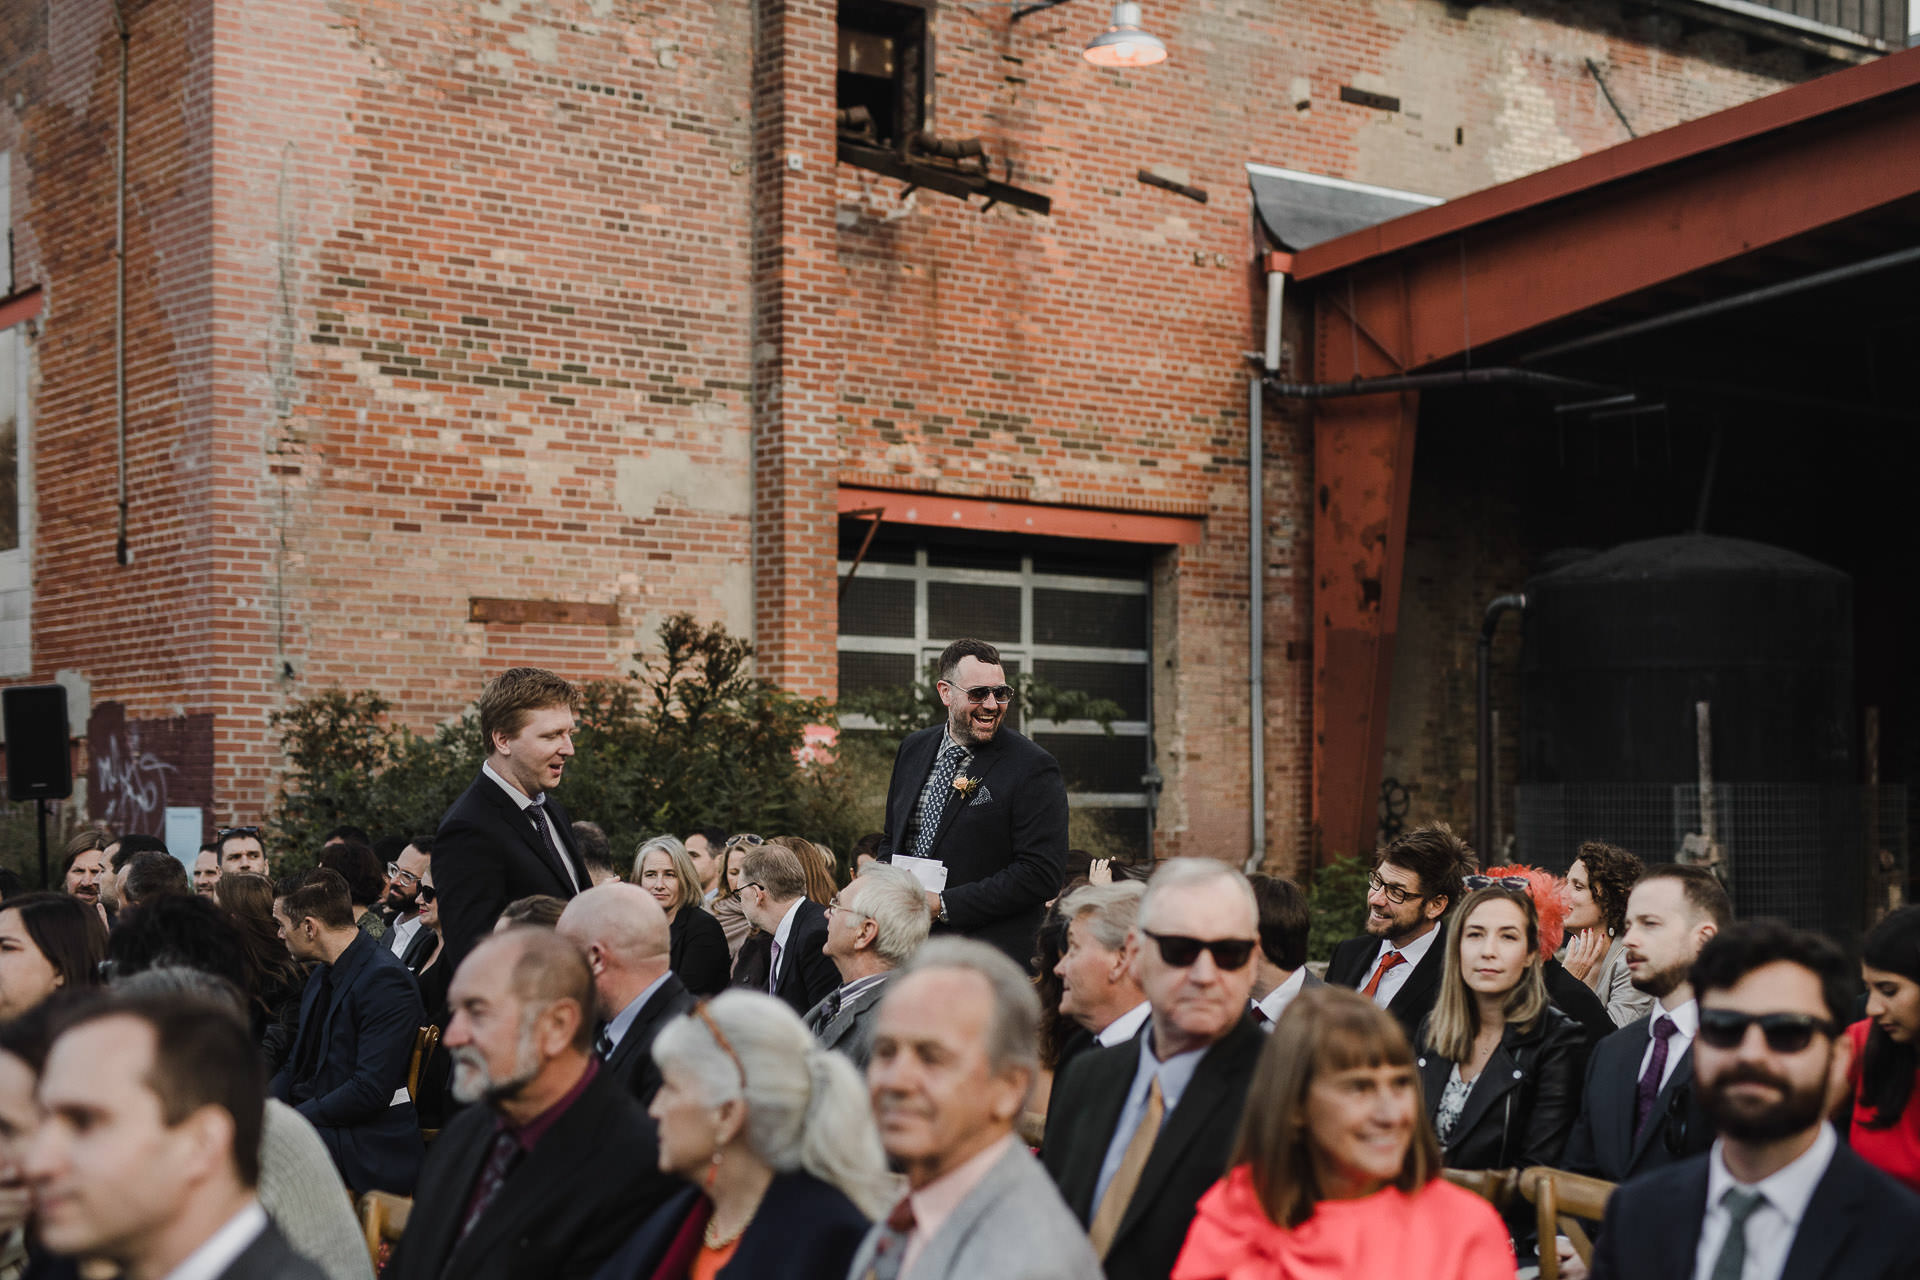 Evergreen Brickworks wedding photographer - guest seating